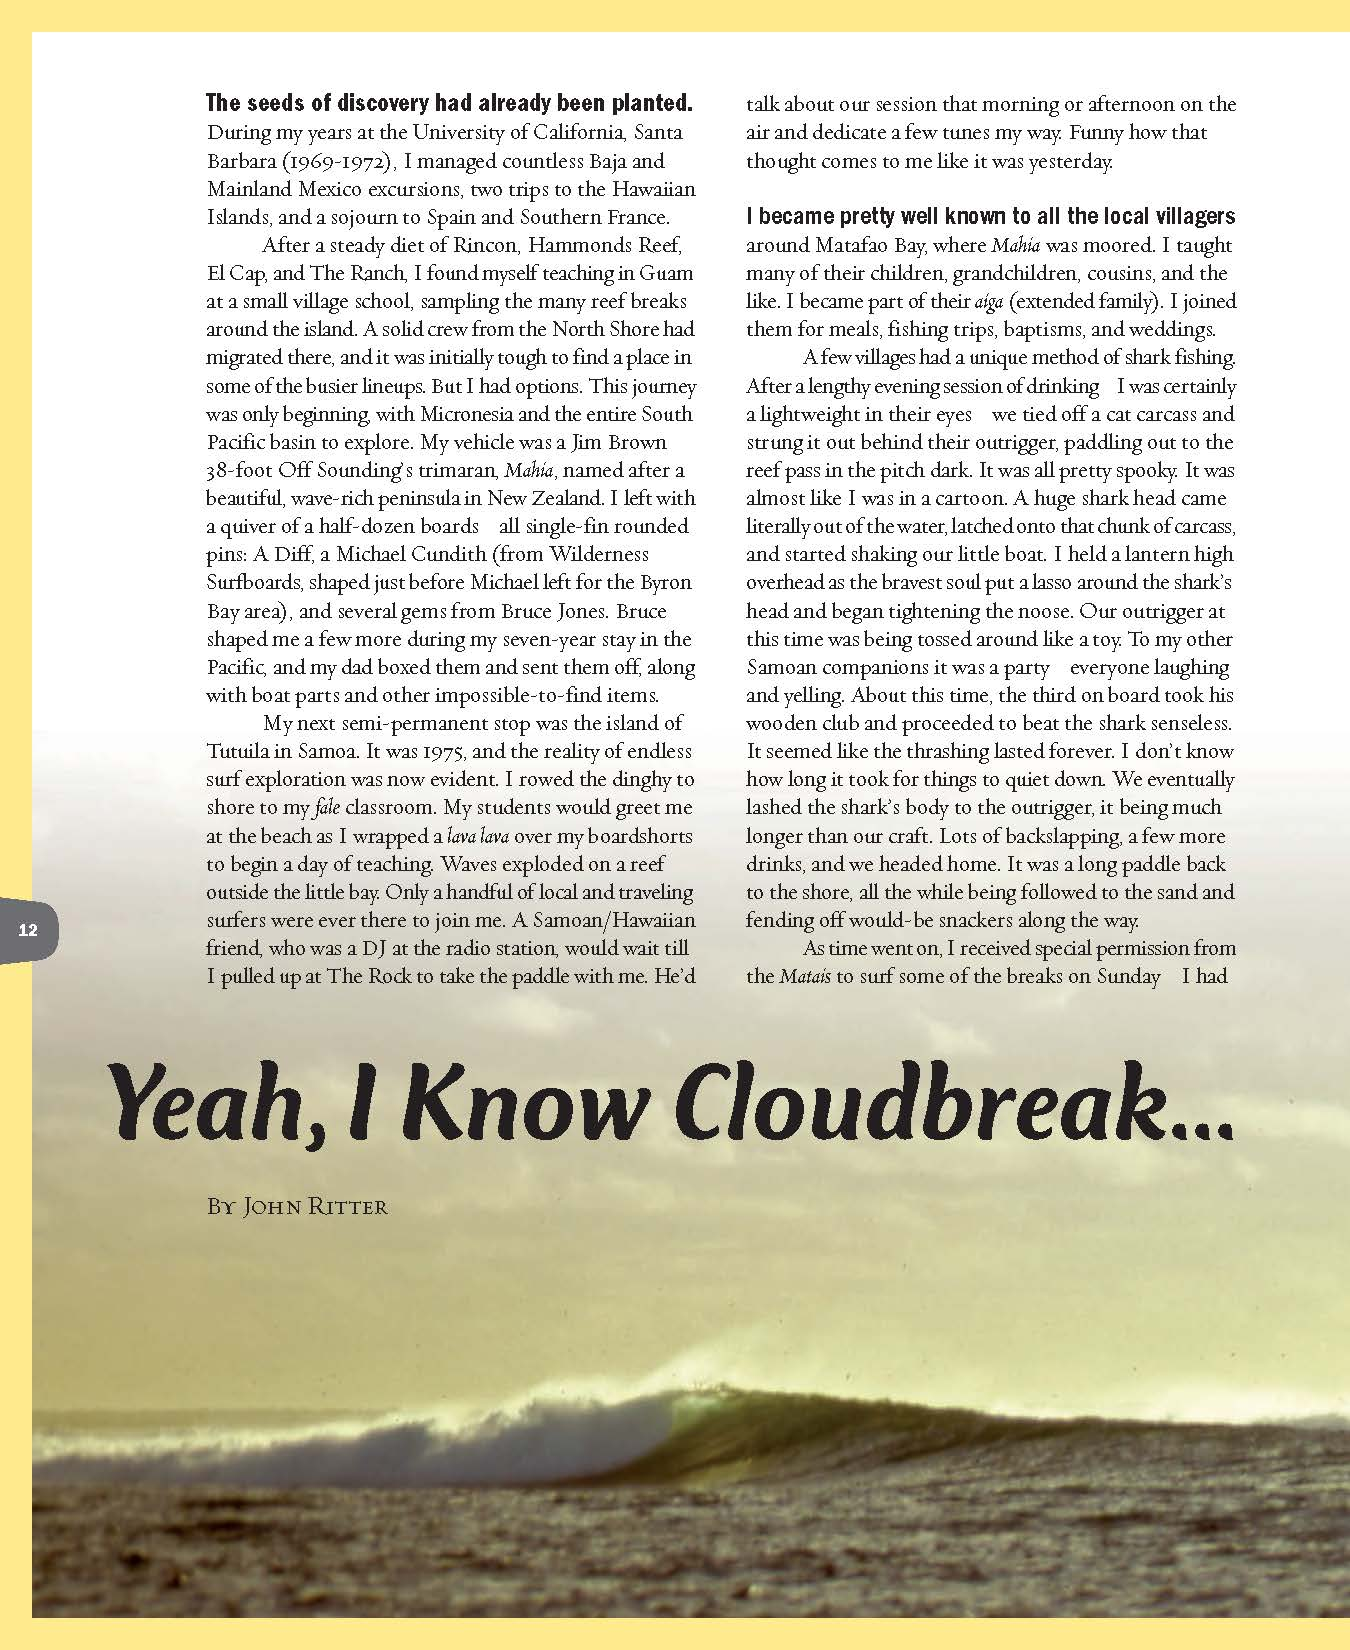 Yea I Know Cloudbreak_Page_2.jpg